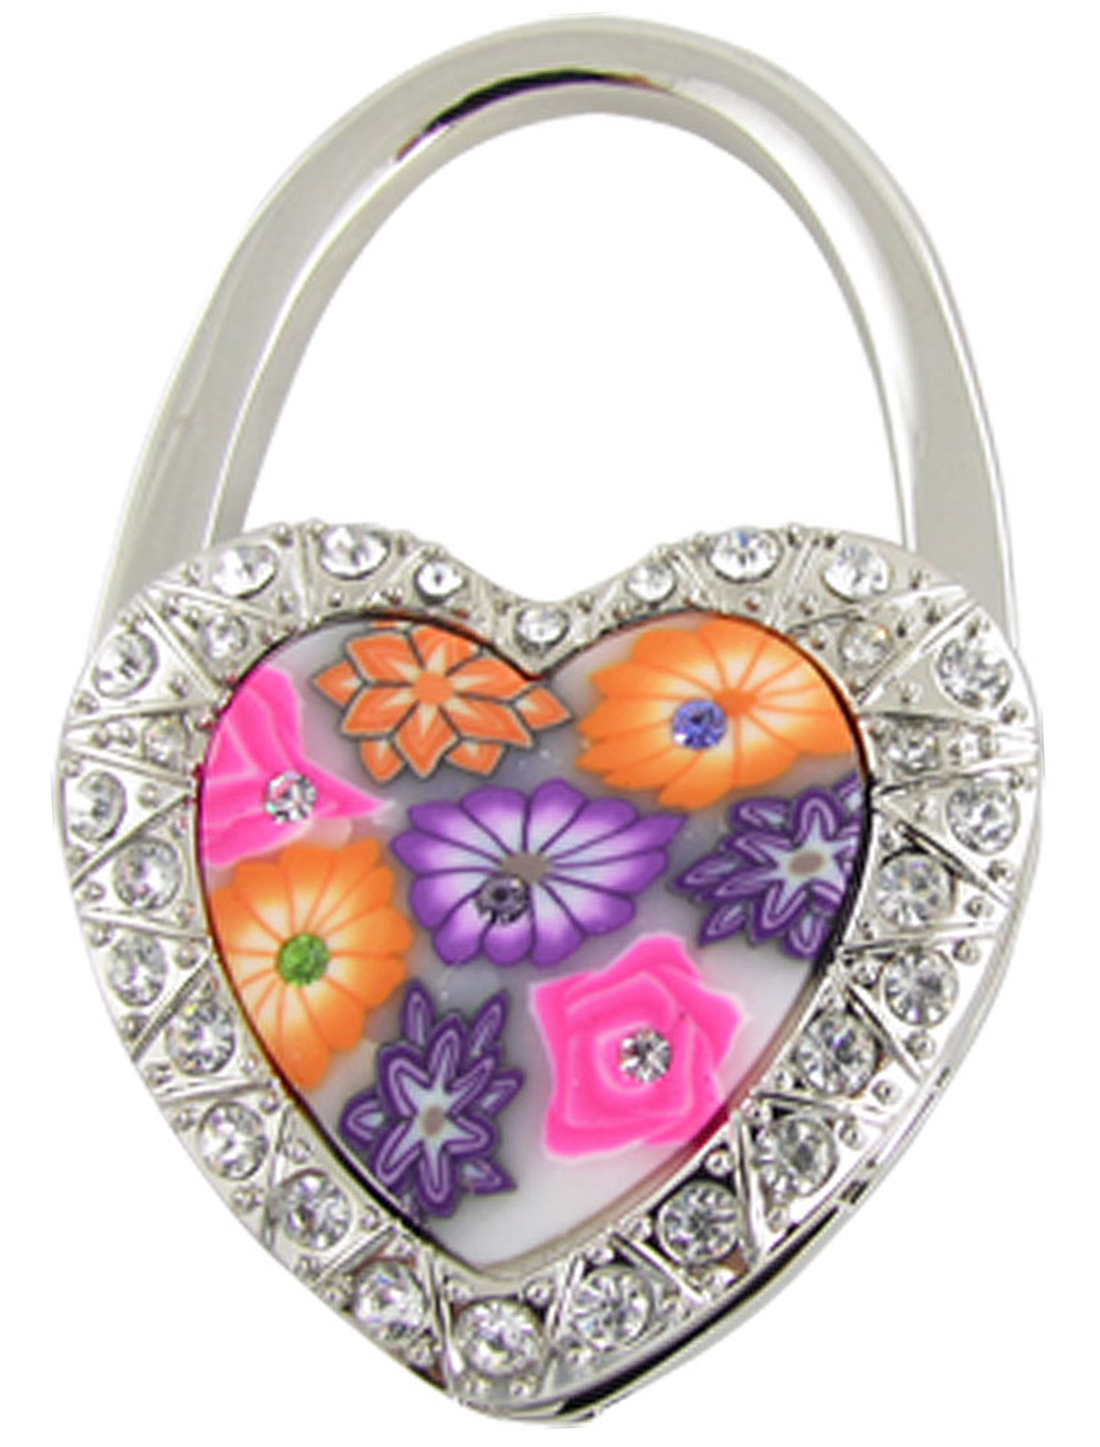 Colorful Heart Lock Style Folding Table Hook for Handbag Purse